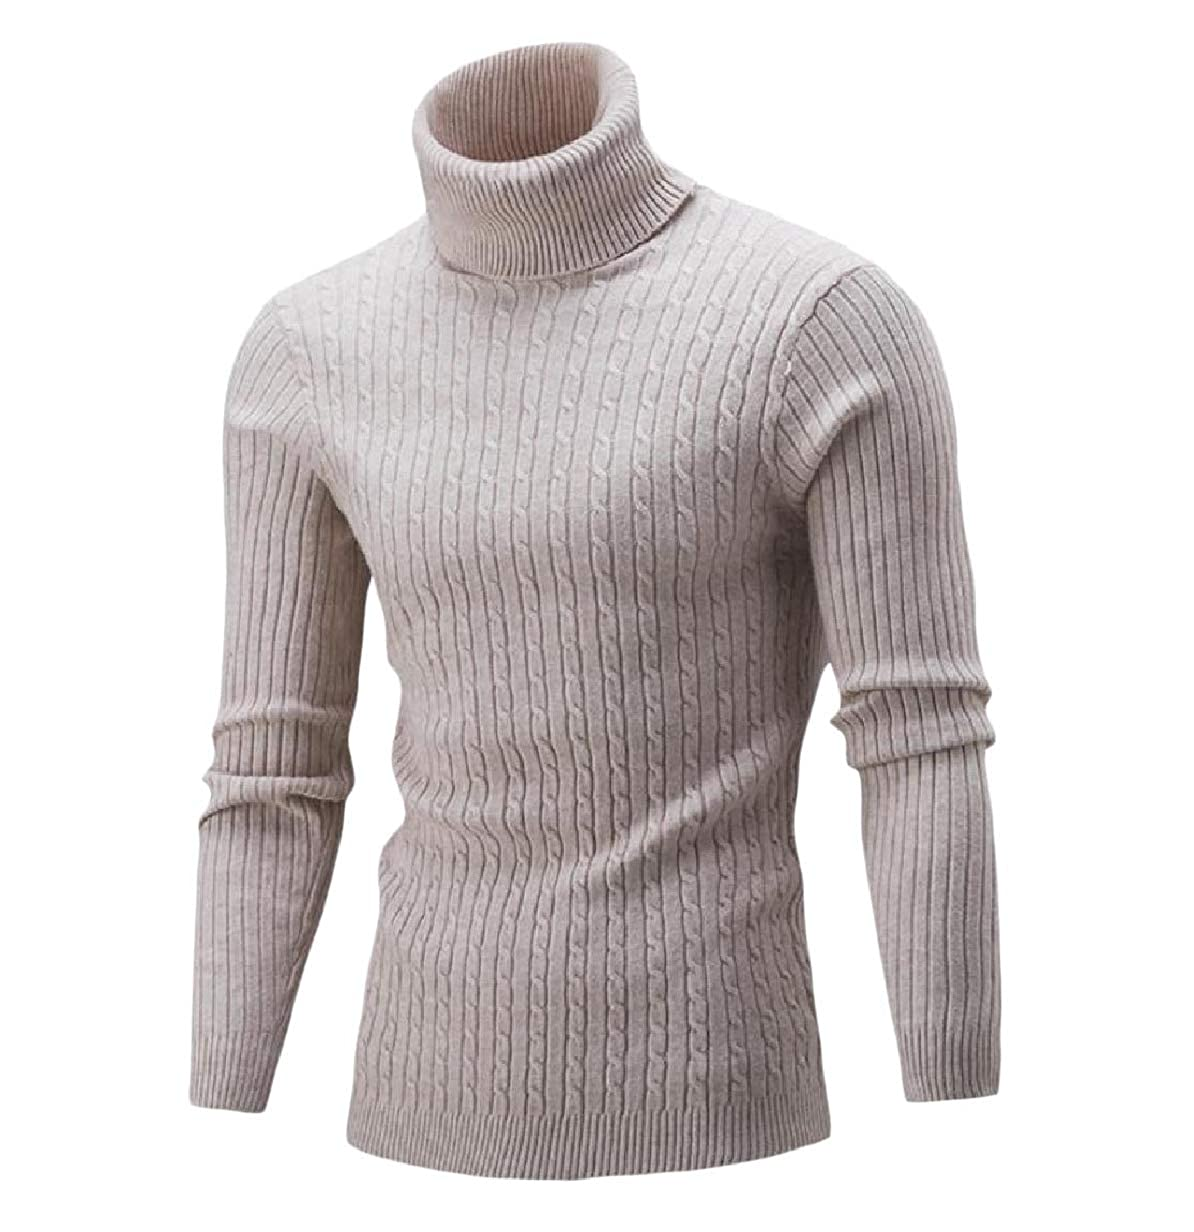 VITryst-Men Slim Fit Ribbed Pure Color Turtleneck Knit Sweater Pullover